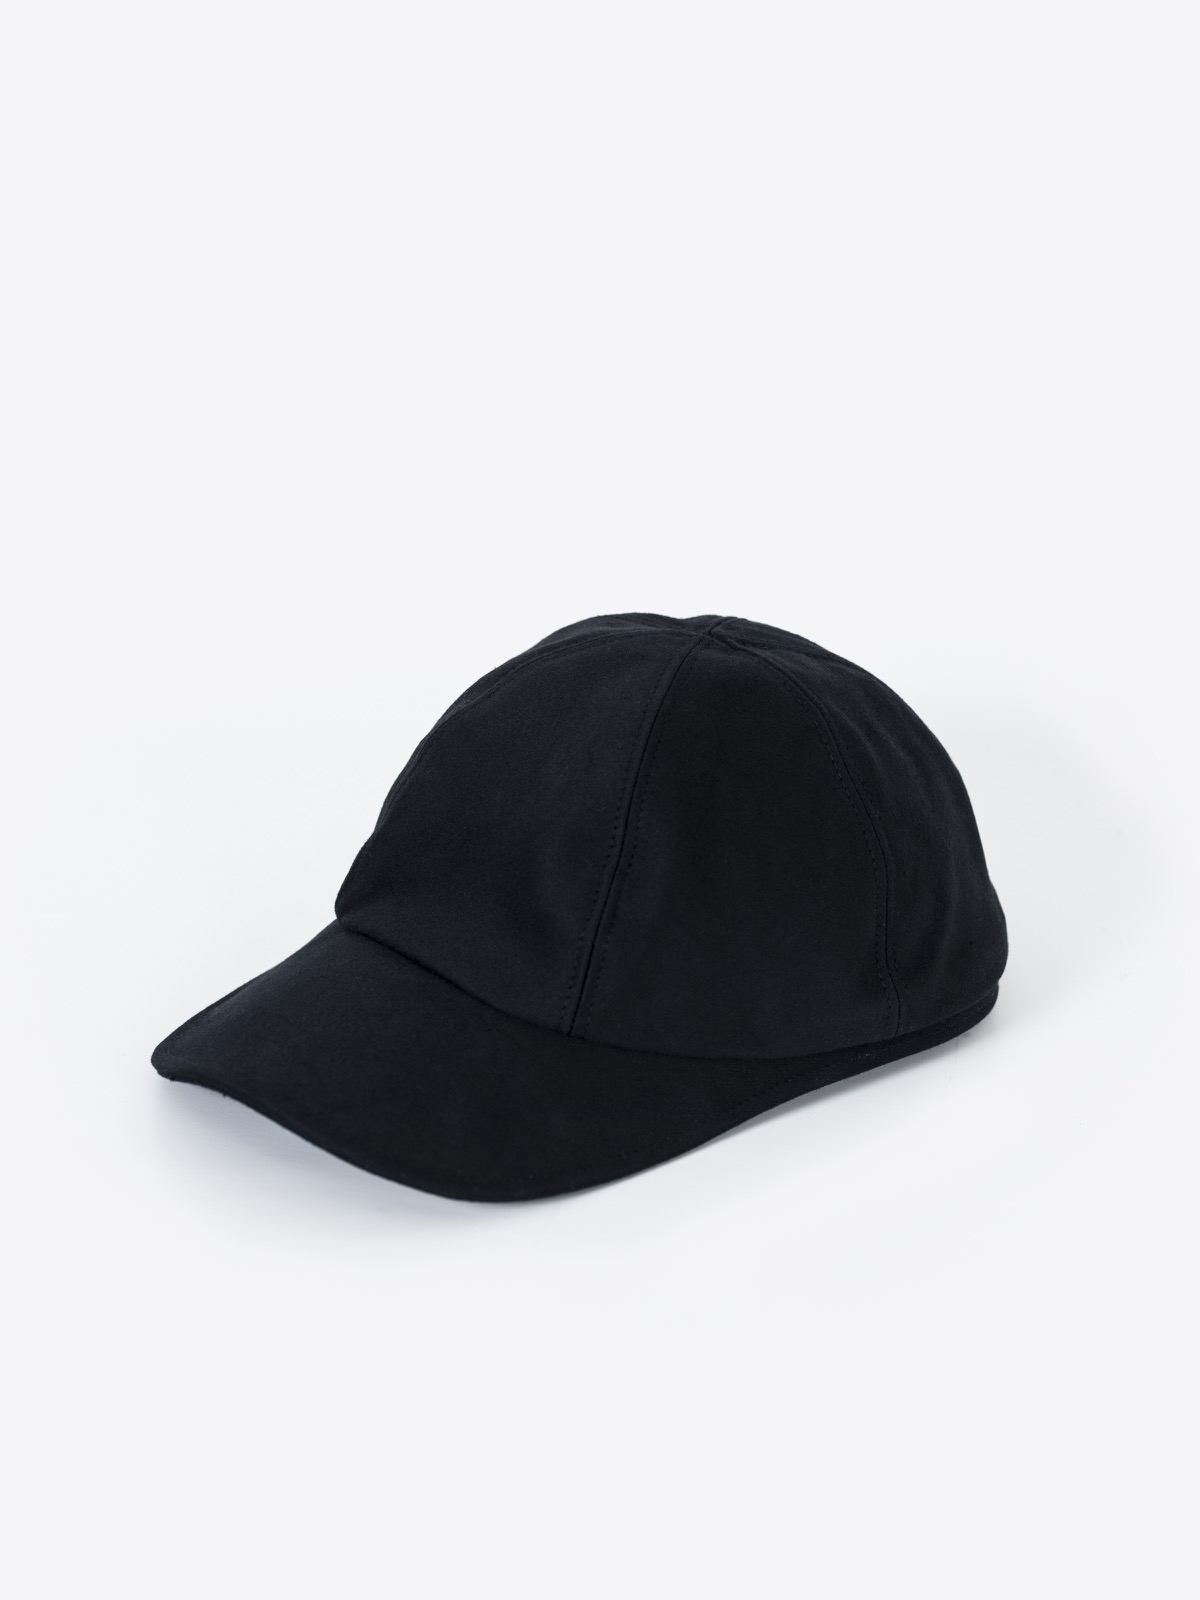 A2 paperboy cap | heavy cotton | black